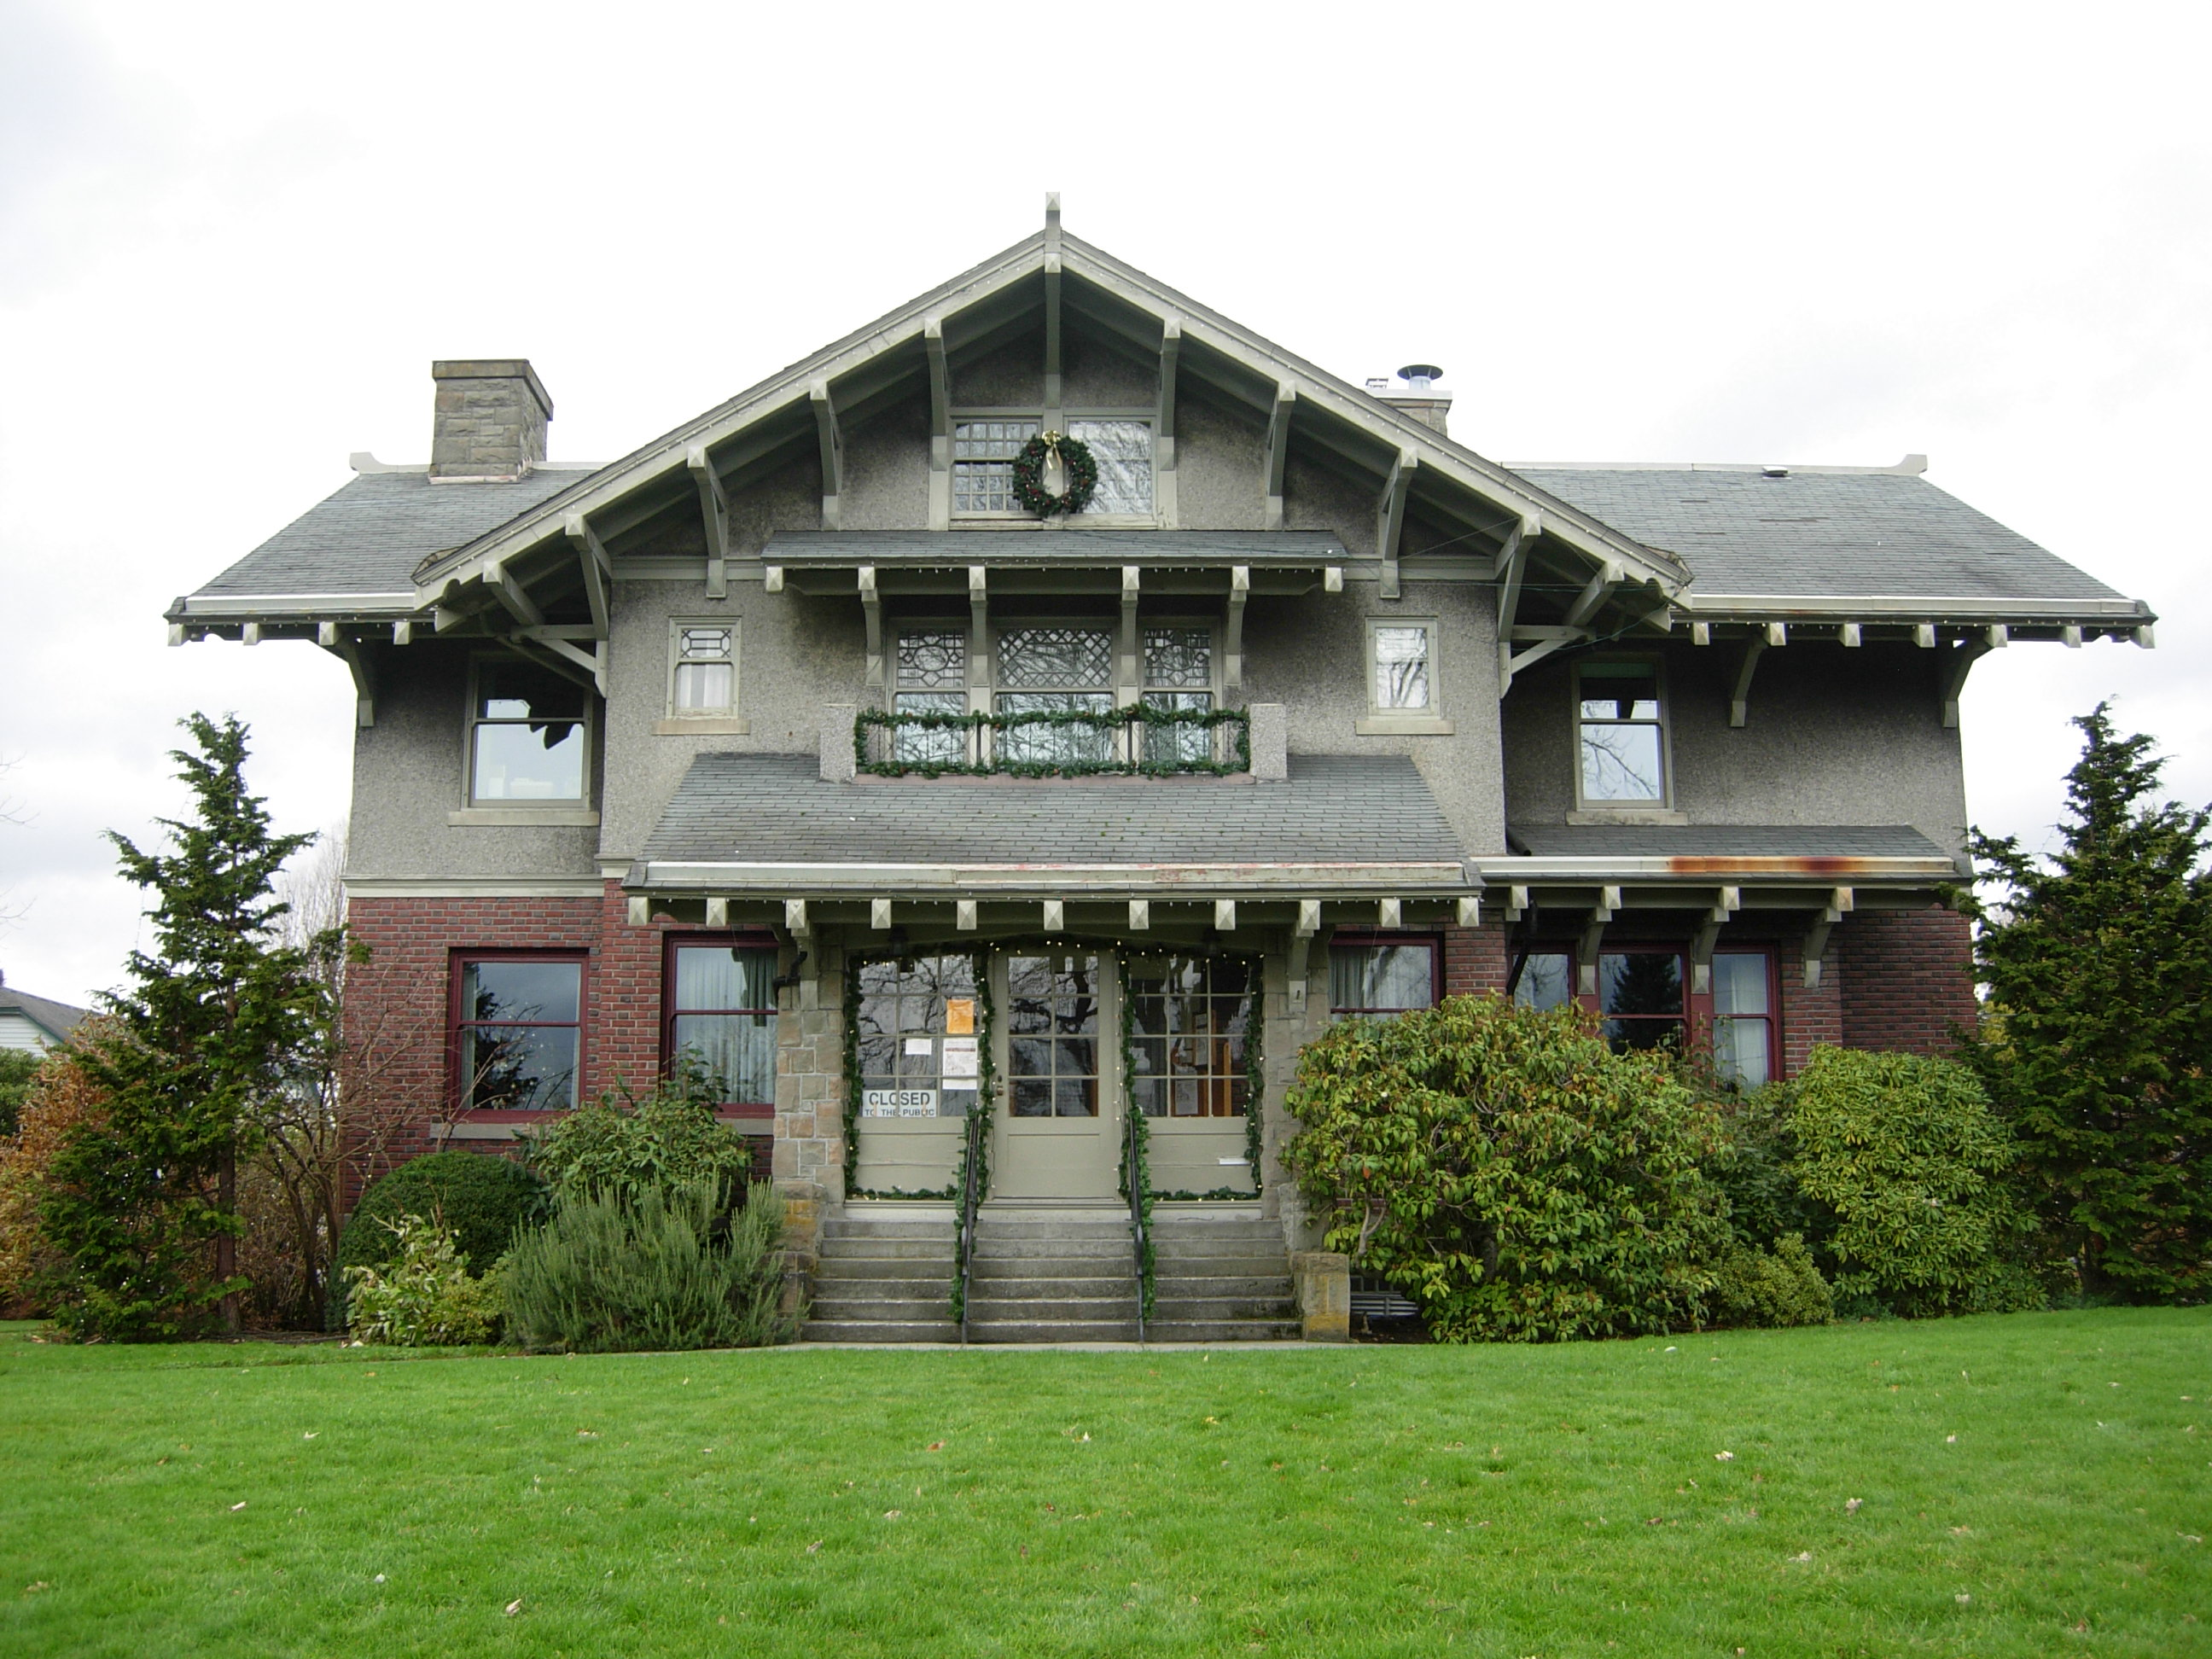 File:Victor Roeder Home.JPG - Wikimedia Commons